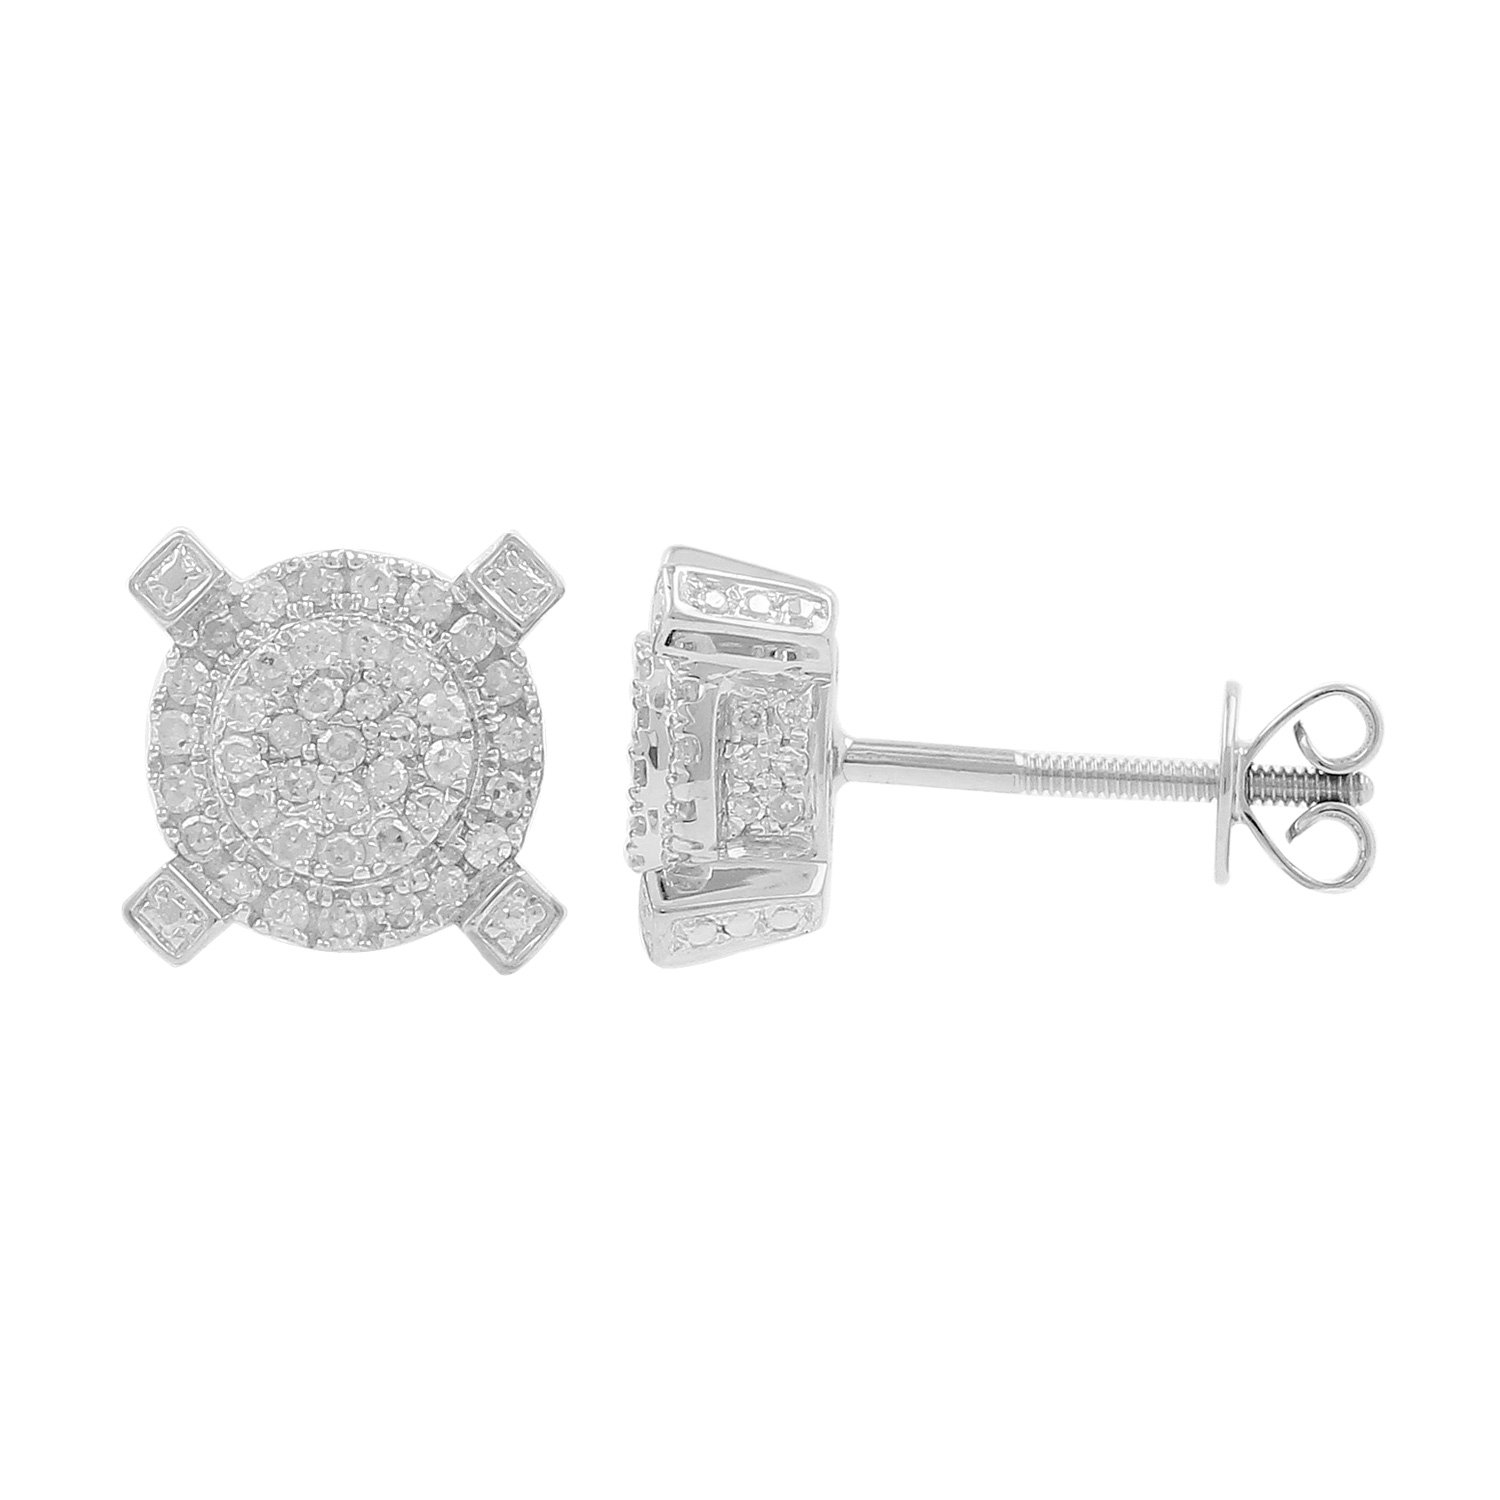 0.50ct Diamond Round Cluster 9mm Wide Mens Iced Stud Earrings in 925 Silver-1/2 CTTW (I-J, I2-I3)